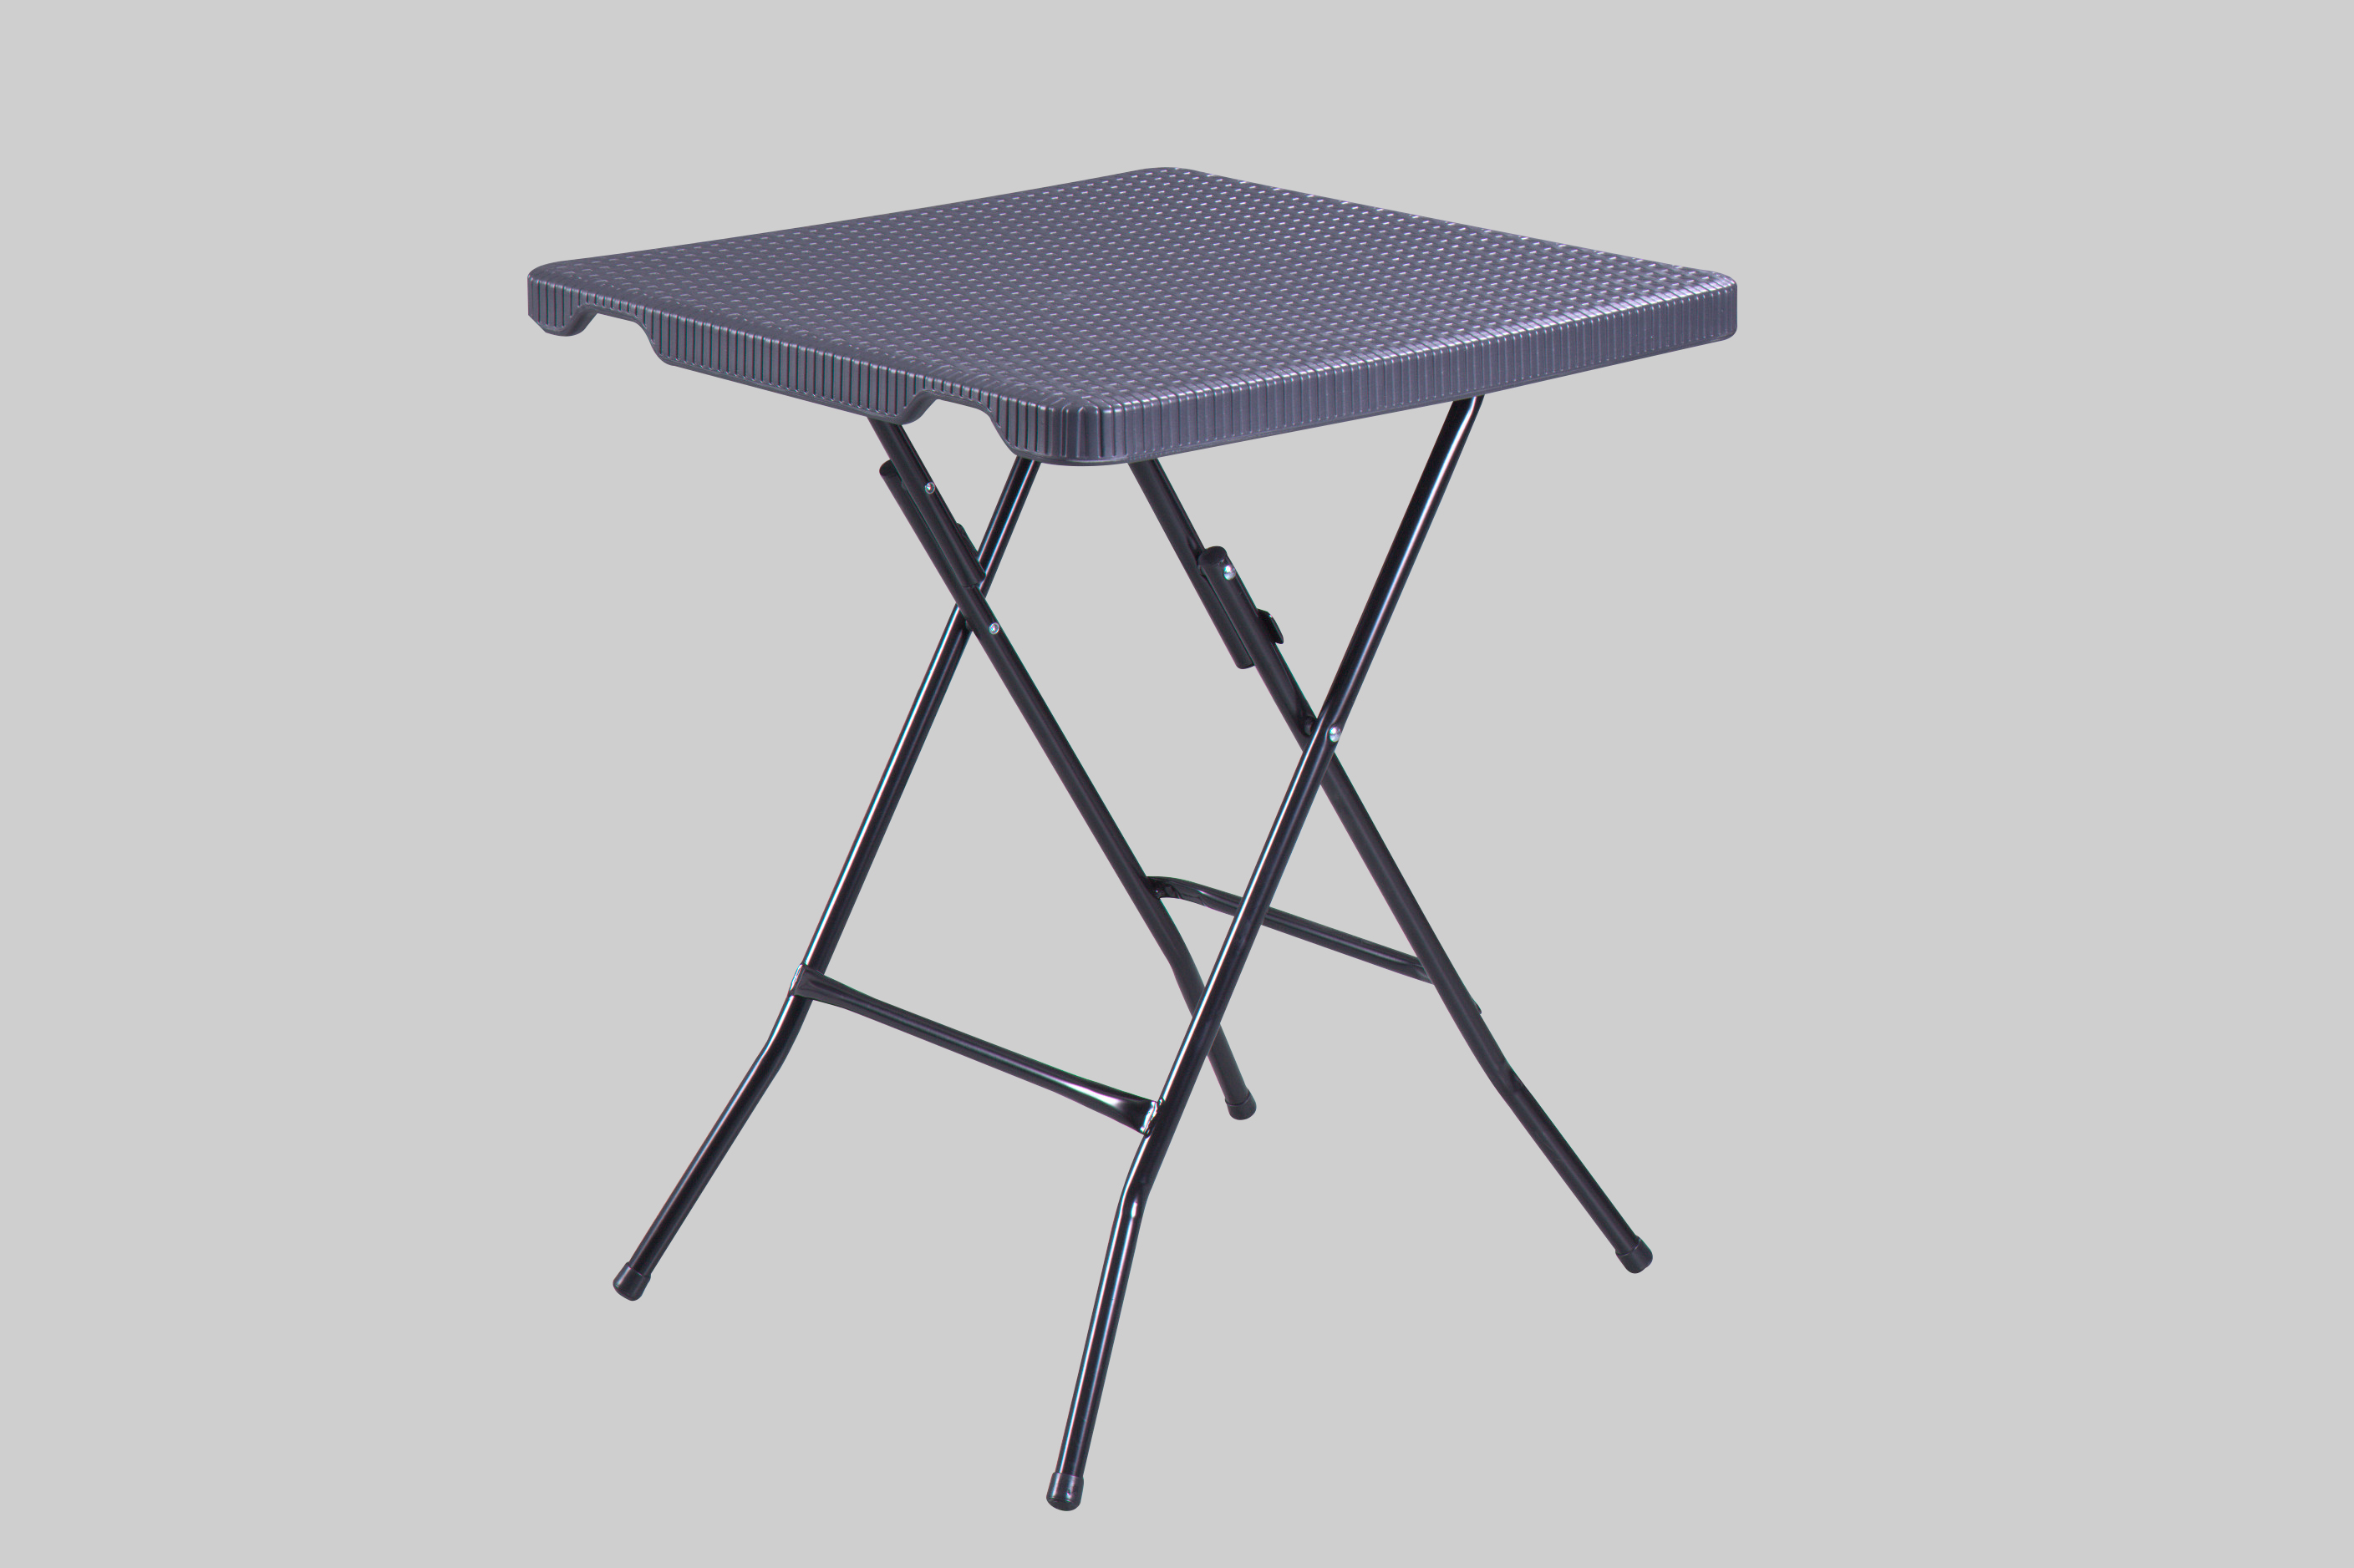 HDPE Wicker Square Table